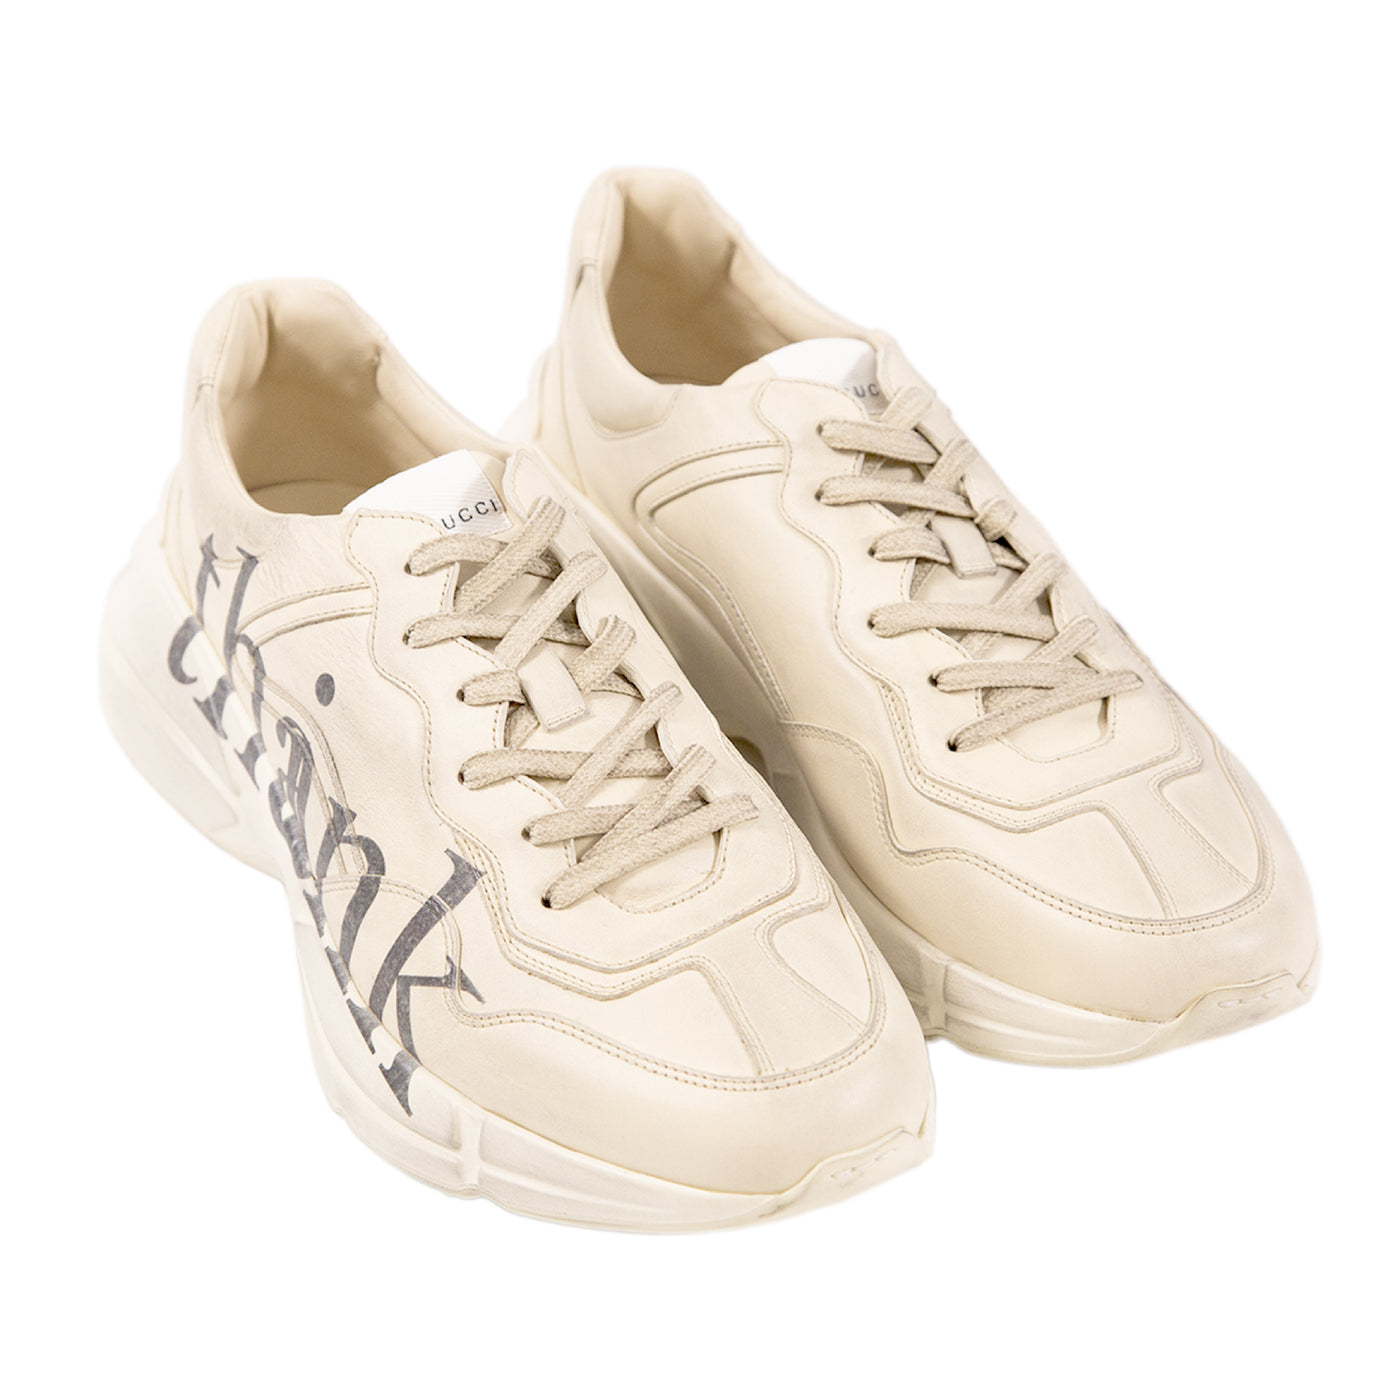 Load image into Gallery viewer, GUCCI LOW-TOP SNEAKERS WHITE